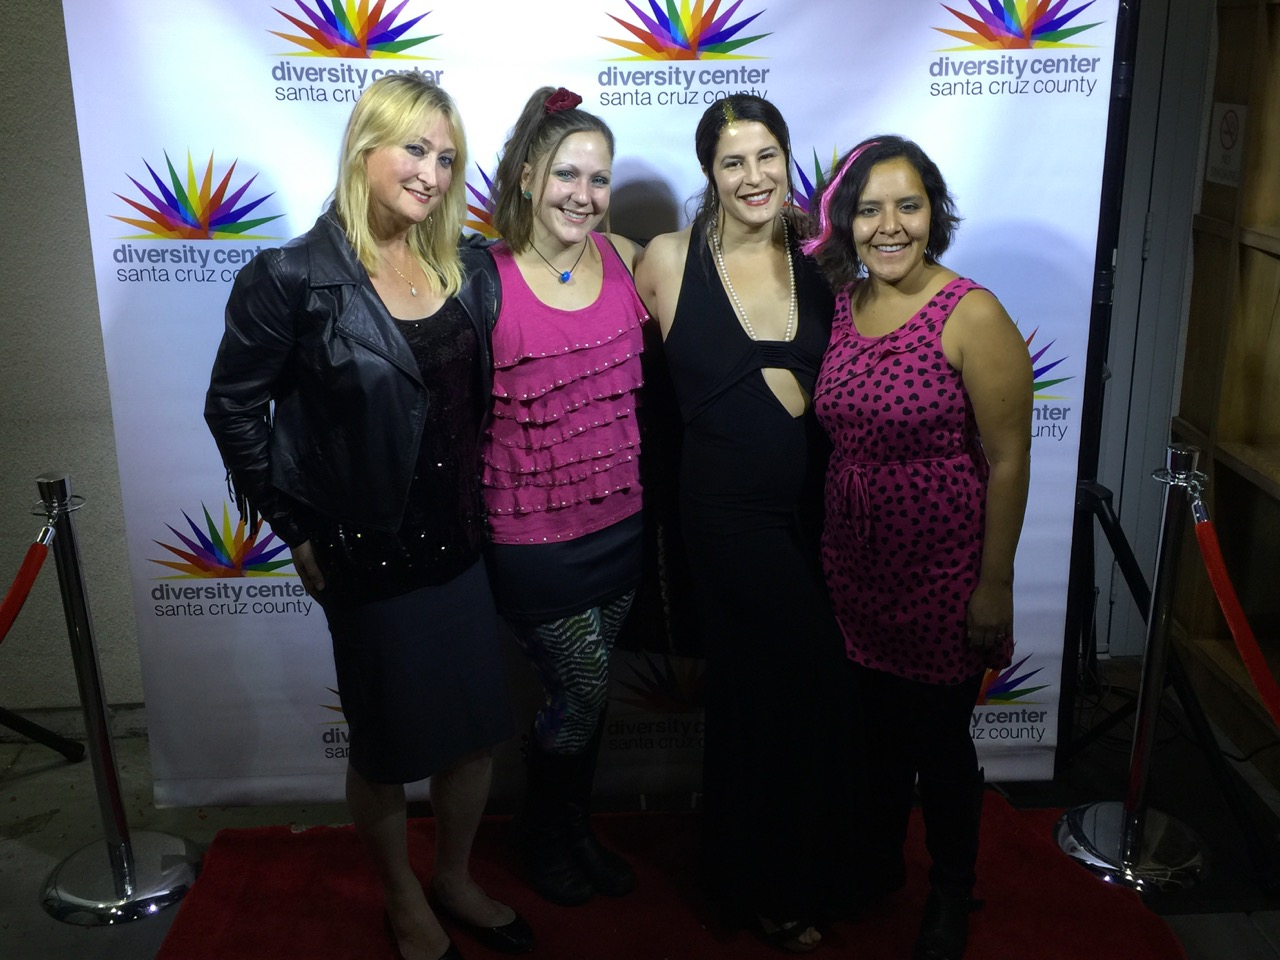 HotelParadox 2017 Diversity Center Gala Event in Santa Cruz